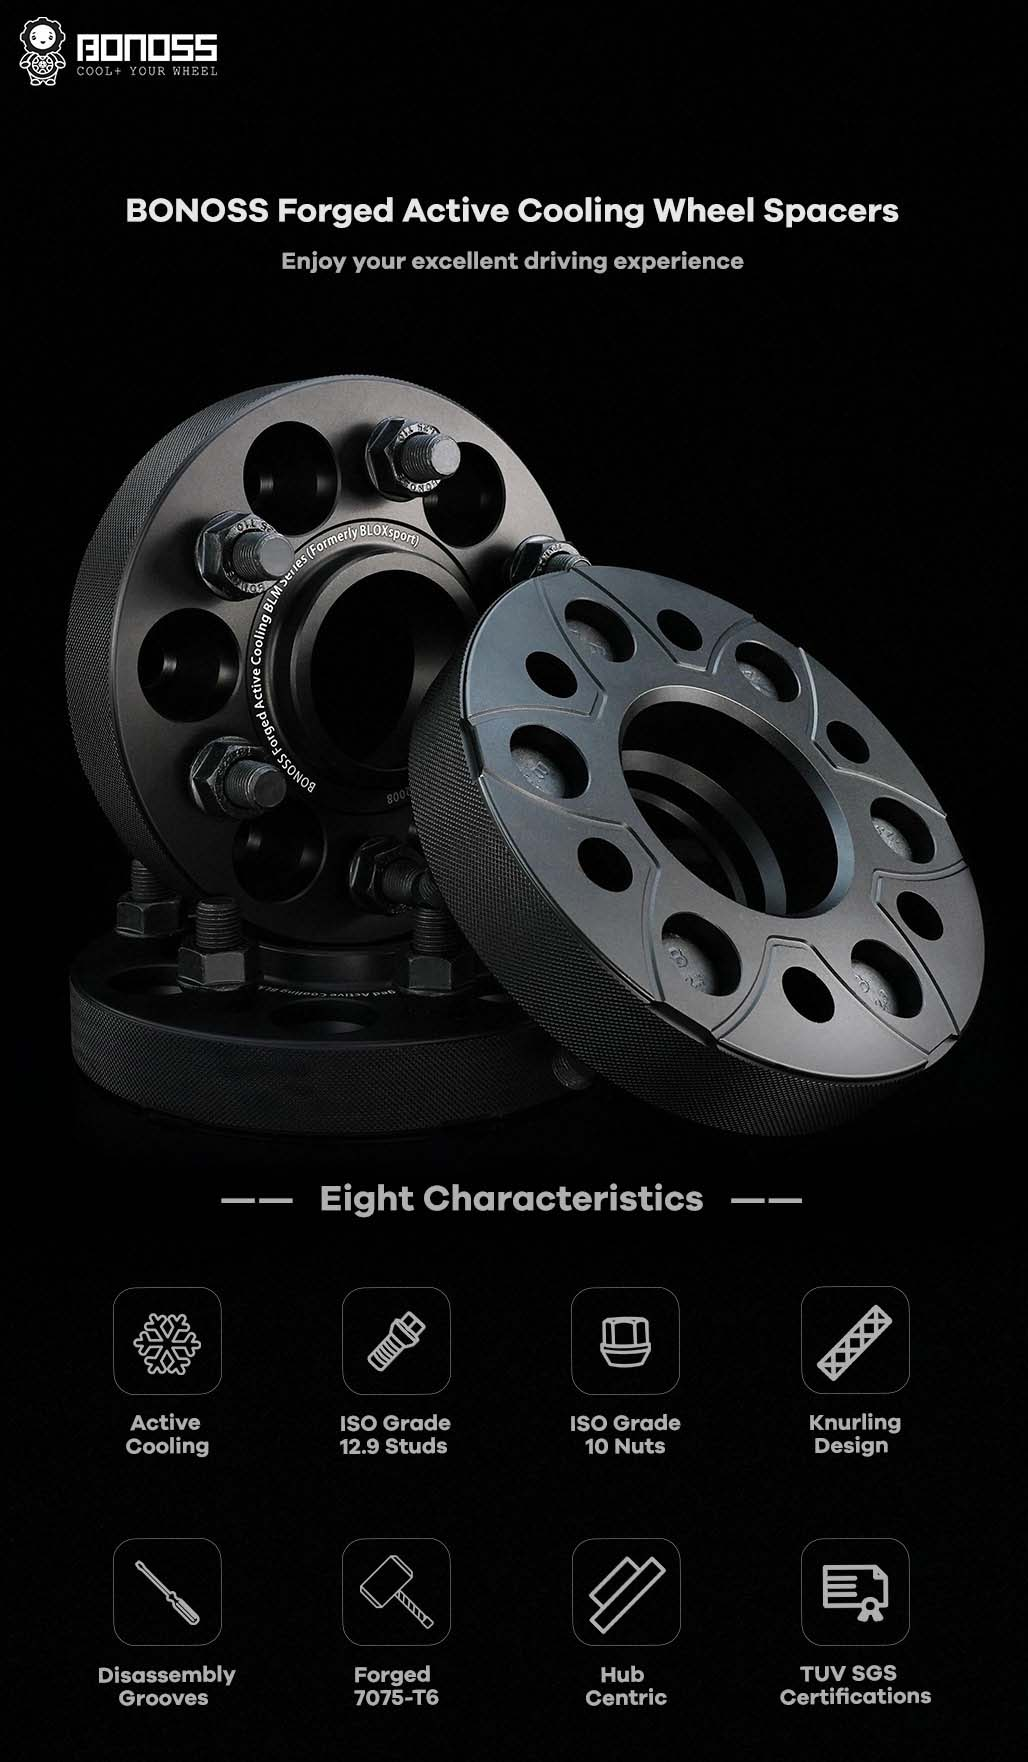 BONOSS Forged Active Cooling Hubcentric Wheel Spacers 6 Lug Wheel Adapters Wheel ET Spacers AL7075-T6